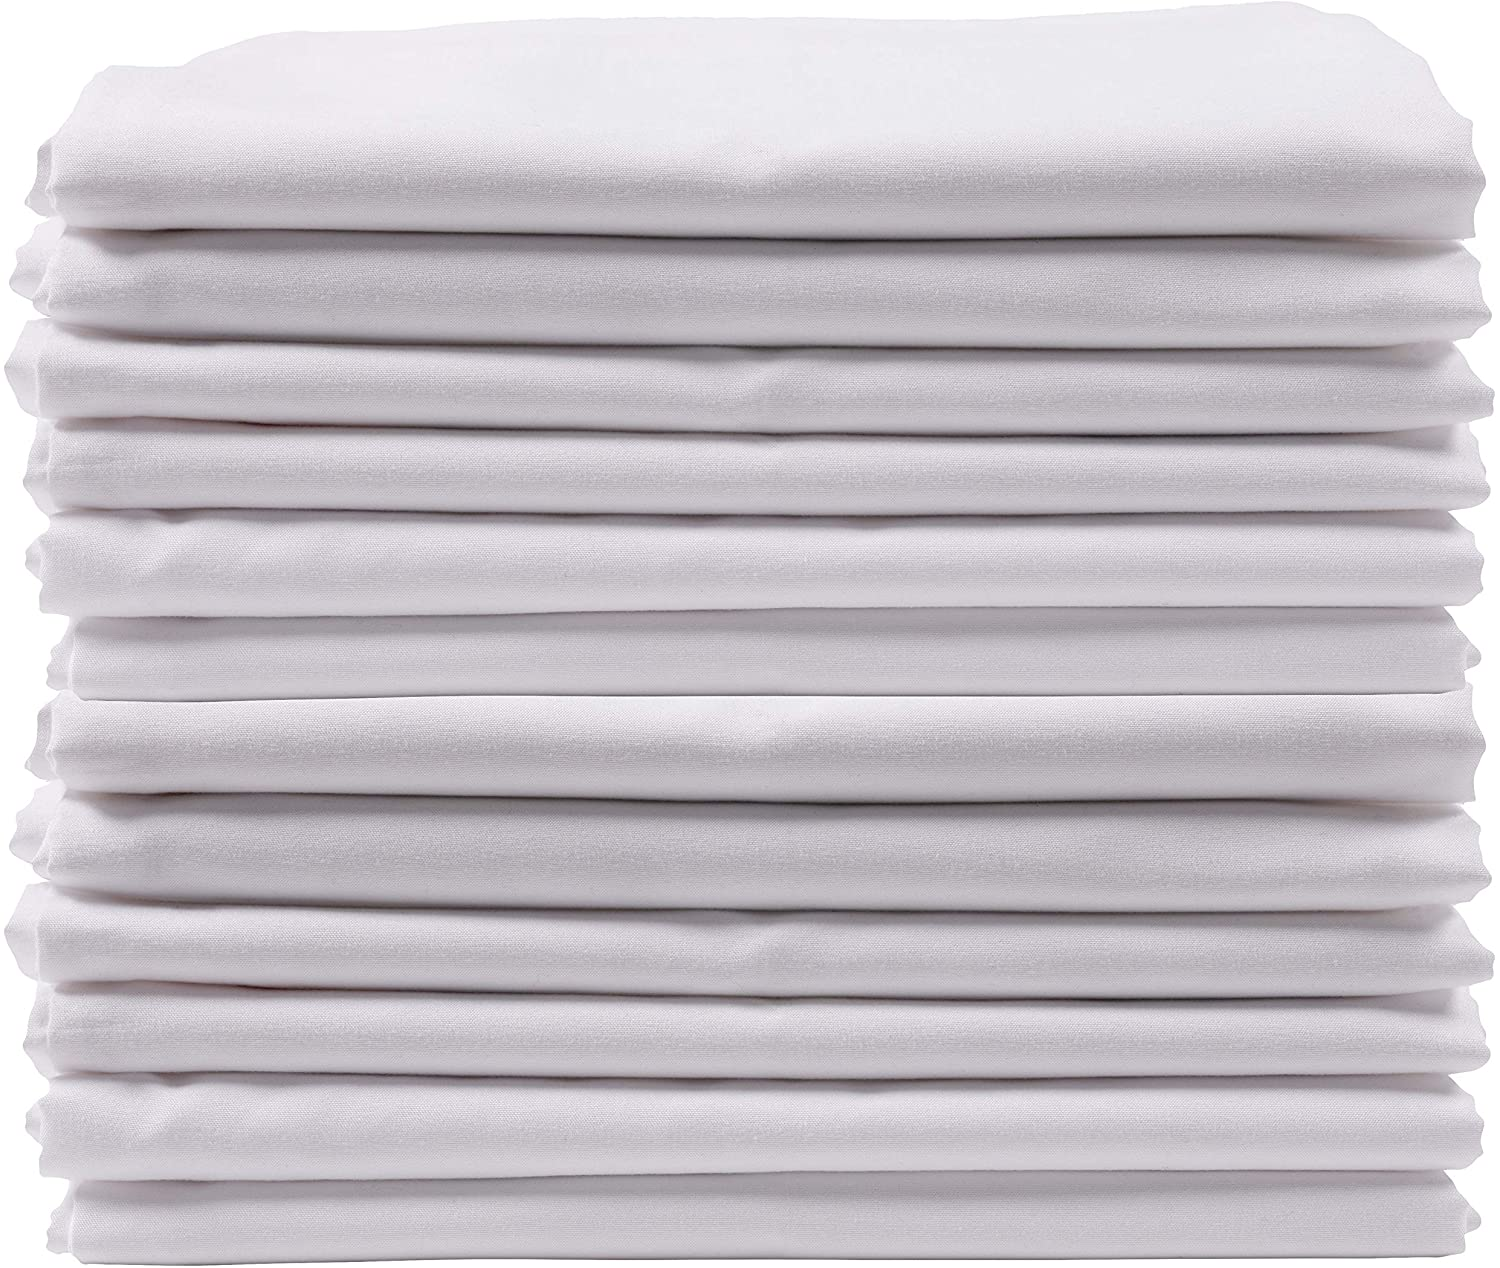 KAF Home Brushed Microfiber Pillow Cases Bulk Pack   Set of 12 Standard Queen Sized Pillow Cases   White   Perfect to Control Allergies and Insure Sound, Luxurious Sleep